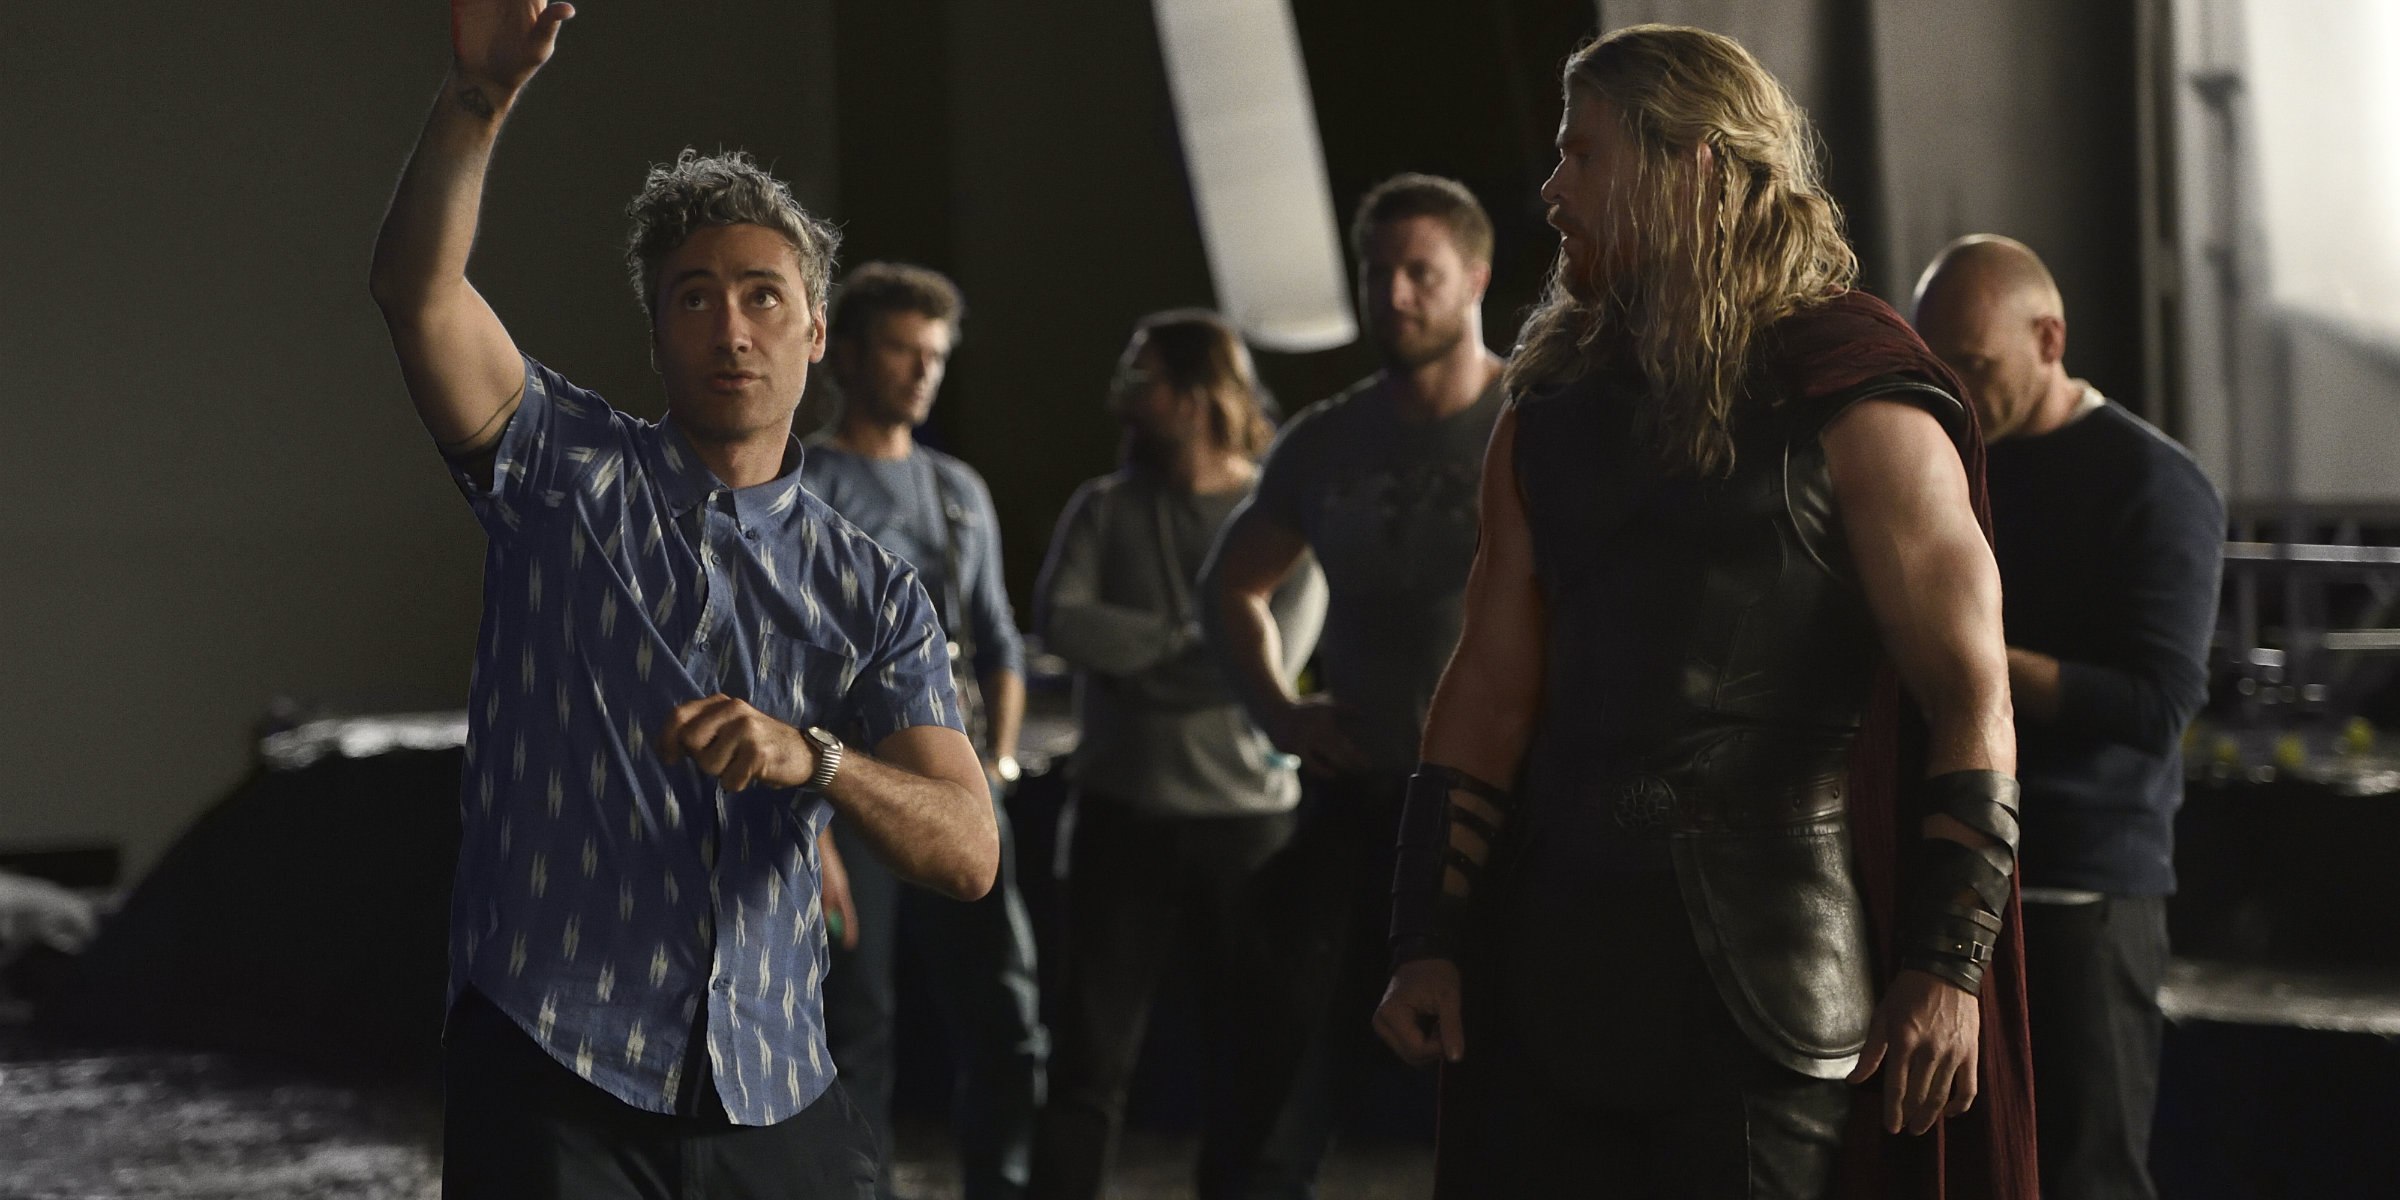 Thor: Ragnarok - Taika Waititi and Chris Hemsworth